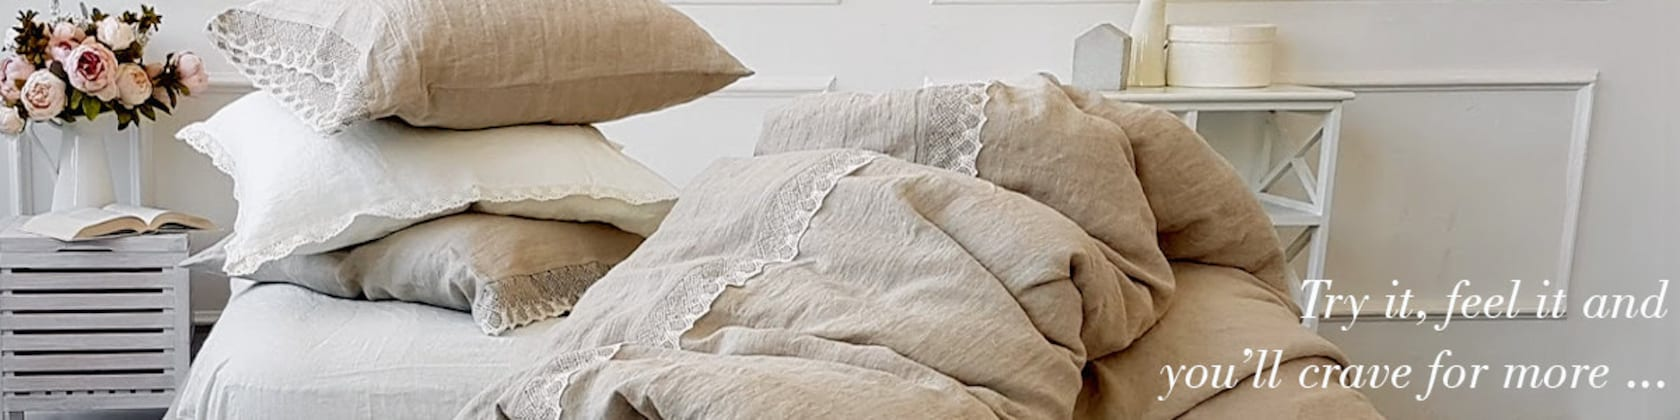 Copripiumino Re Sole.Natural Healthy Linen Bedding Home Textile Di Dejavulinen